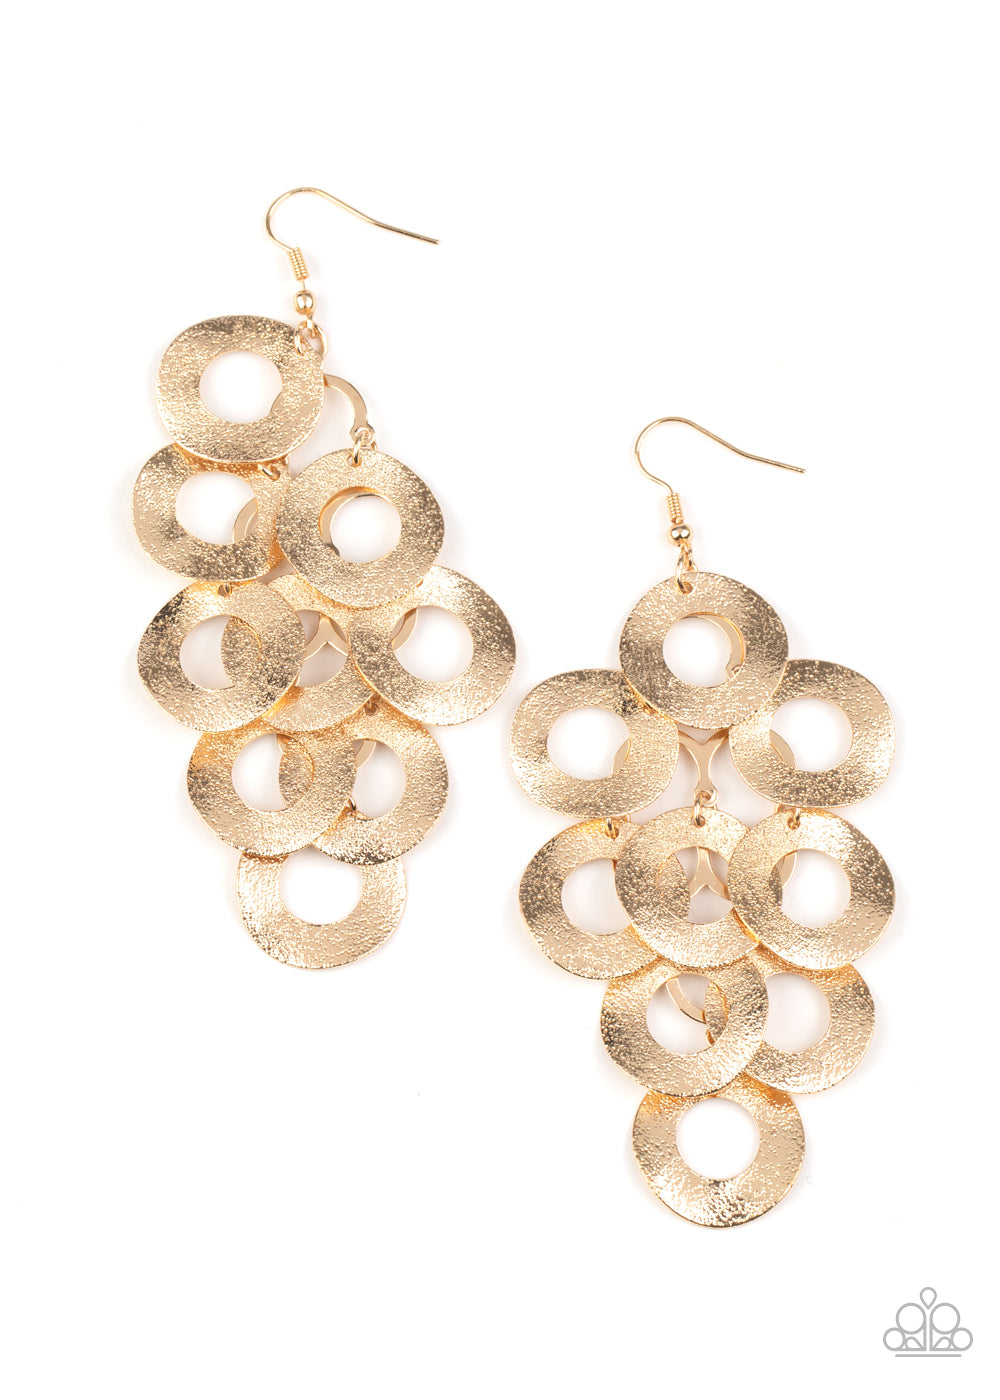 five-dollar-jewelry-scattered-shimmer-gold-earrings-paparazzi-accessories